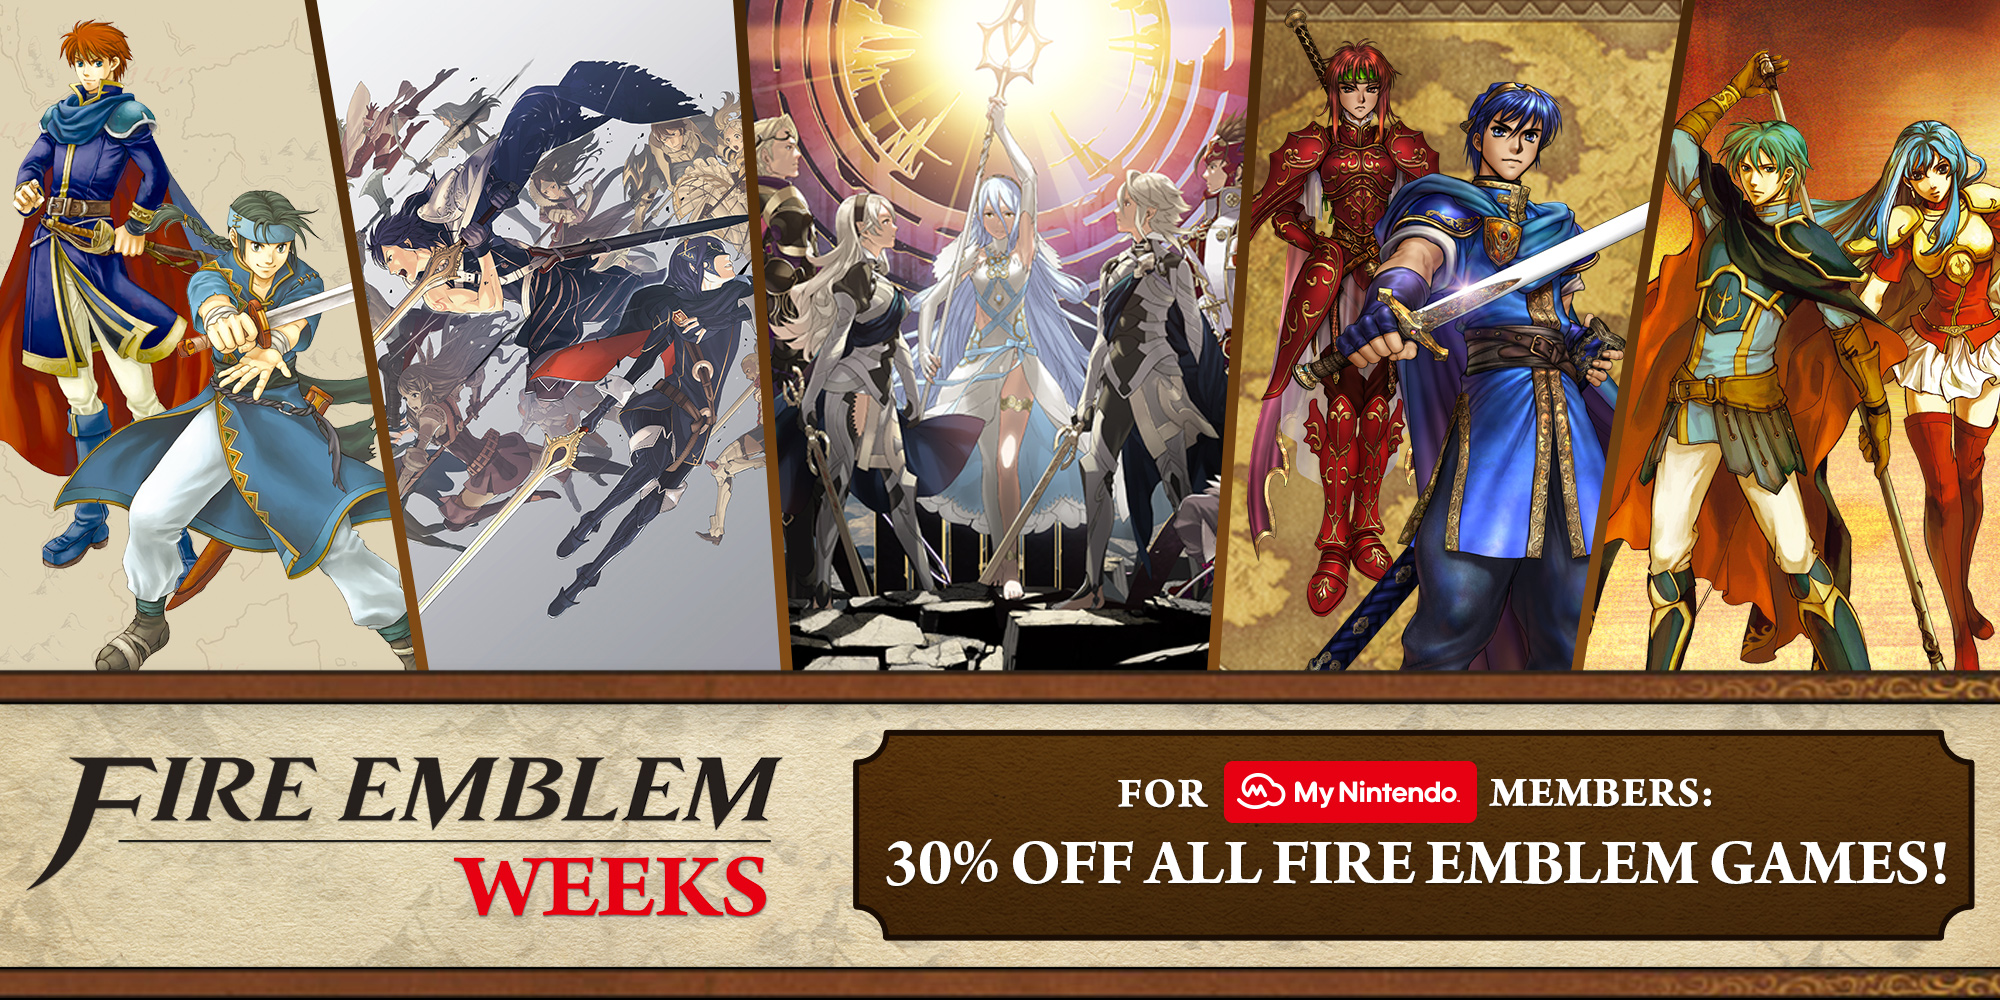 Nintendo eShop sale: Fire Emblem Weeks 2017 Sale